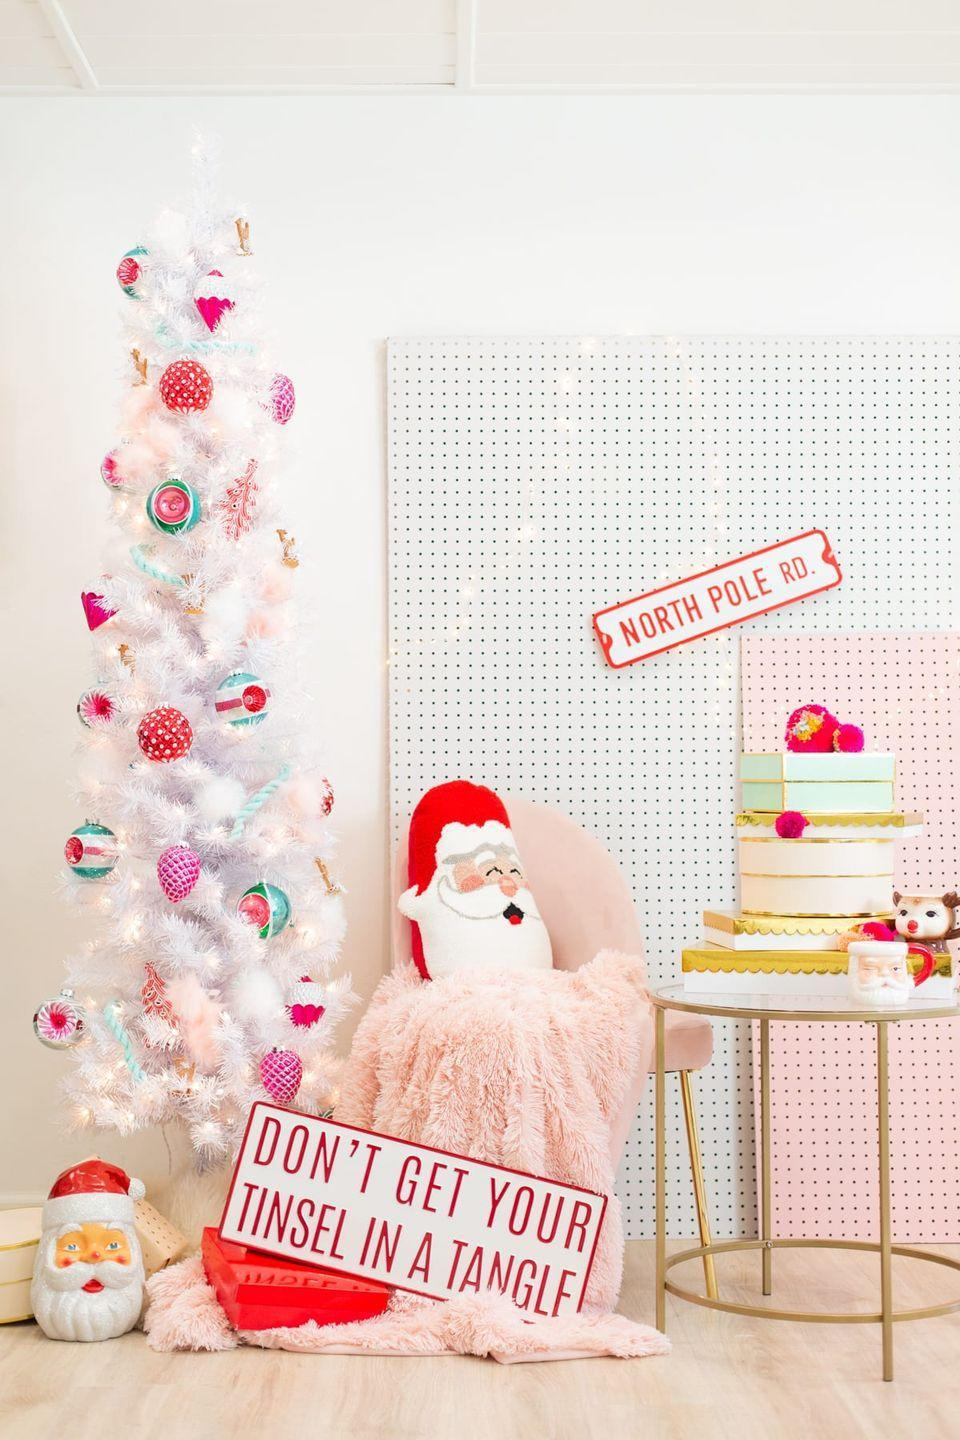 """<p>Even big baubles deserve a spot on this slim tree. Add color (and cheer!) to this otherwise neutral display with red, pink, and teal ornaments.</p><p><em><a href=""""https://lovelyindeed.com/hey-holidays-a-pink-red-and-green-christmas-tree/"""" rel=""""nofollow noopener"""" target=""""_blank"""" data-ylk=""""slk:Get the tutorial at Lovely Indeed »"""" class=""""link rapid-noclick-resp"""">Get the tutorial at Lovely Indeed »</a></em></p>"""